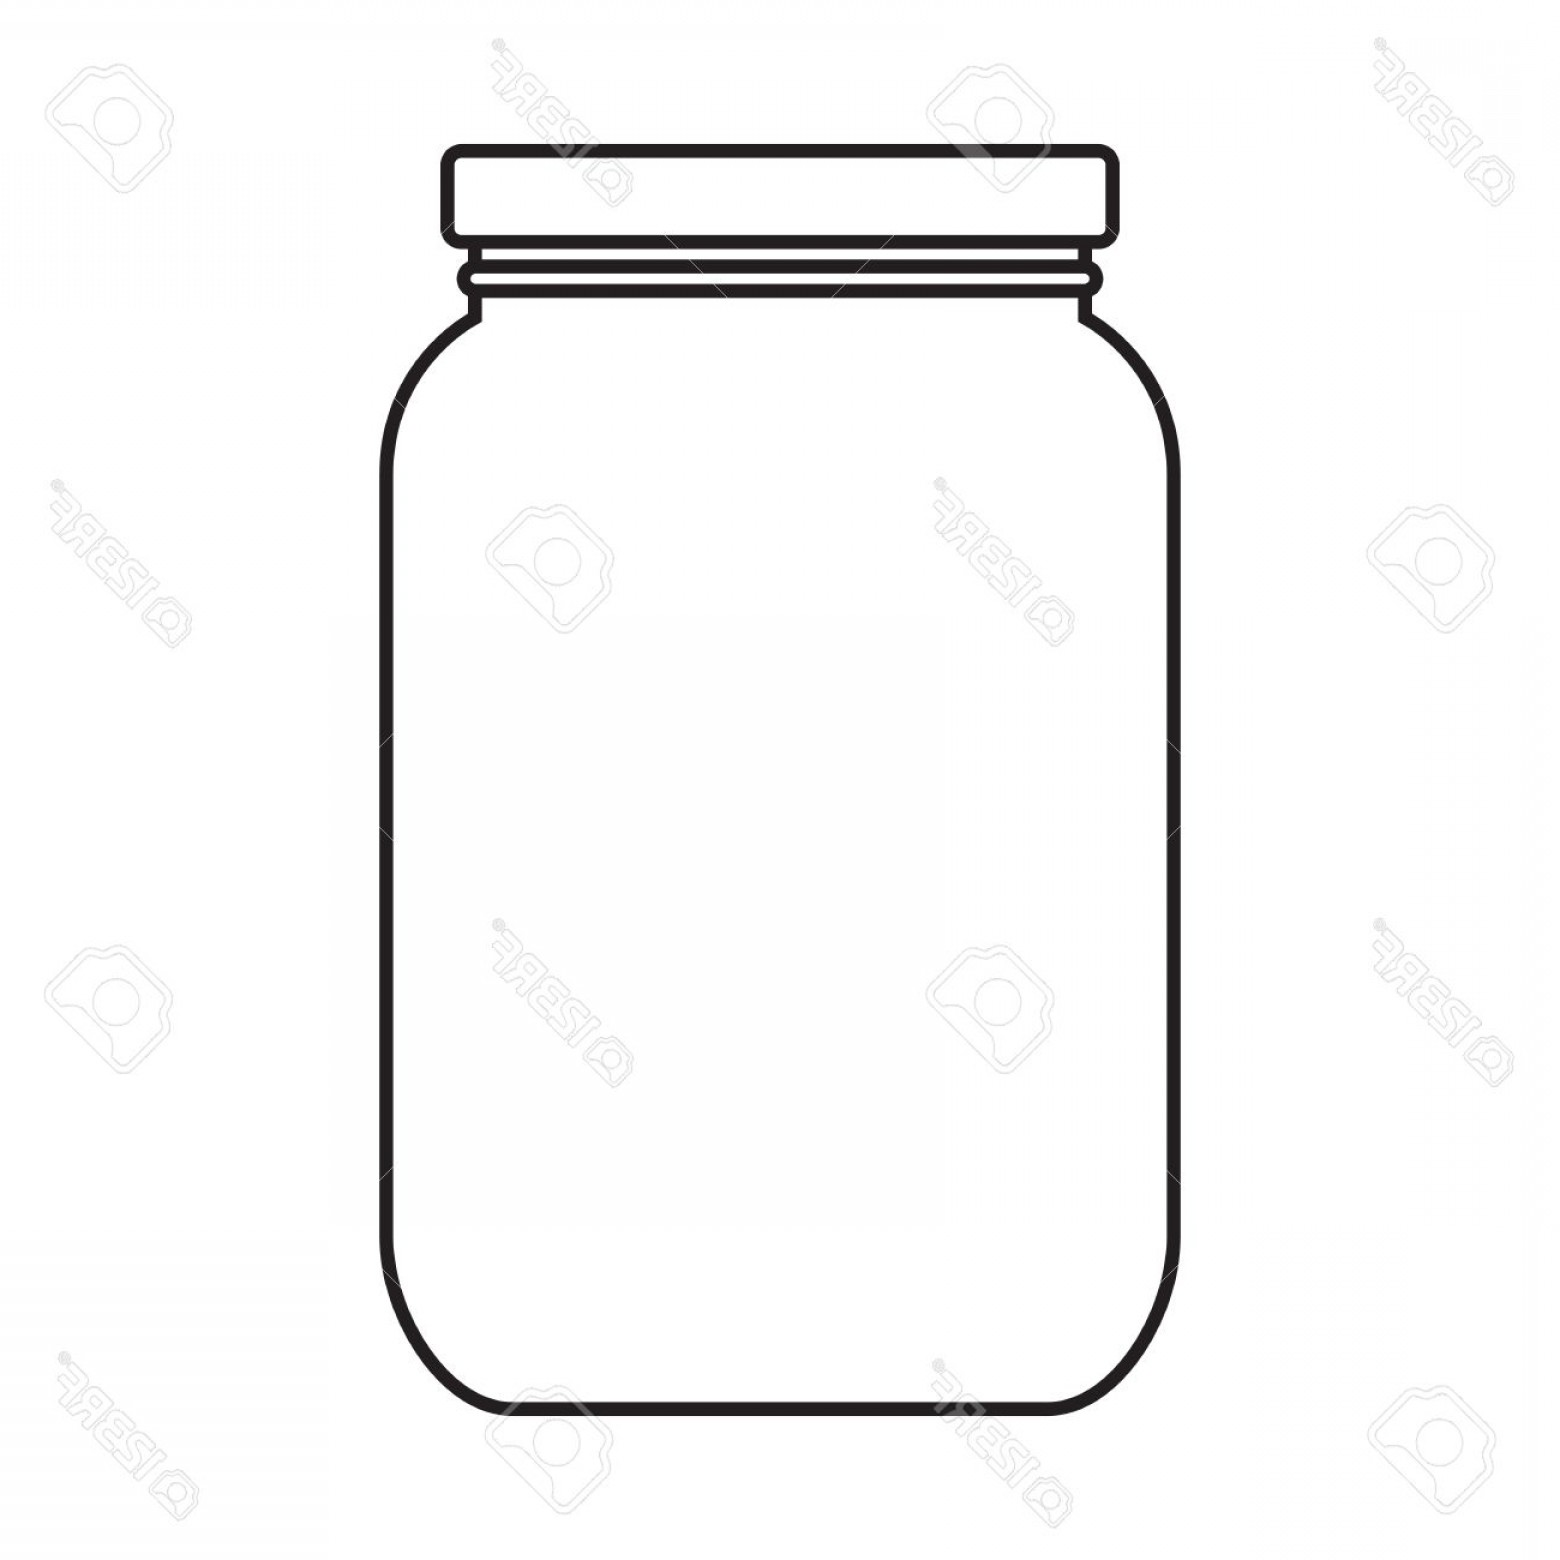 Mason Jar Outline Vector: Photoblank Jar With Cap Isolated On White Background